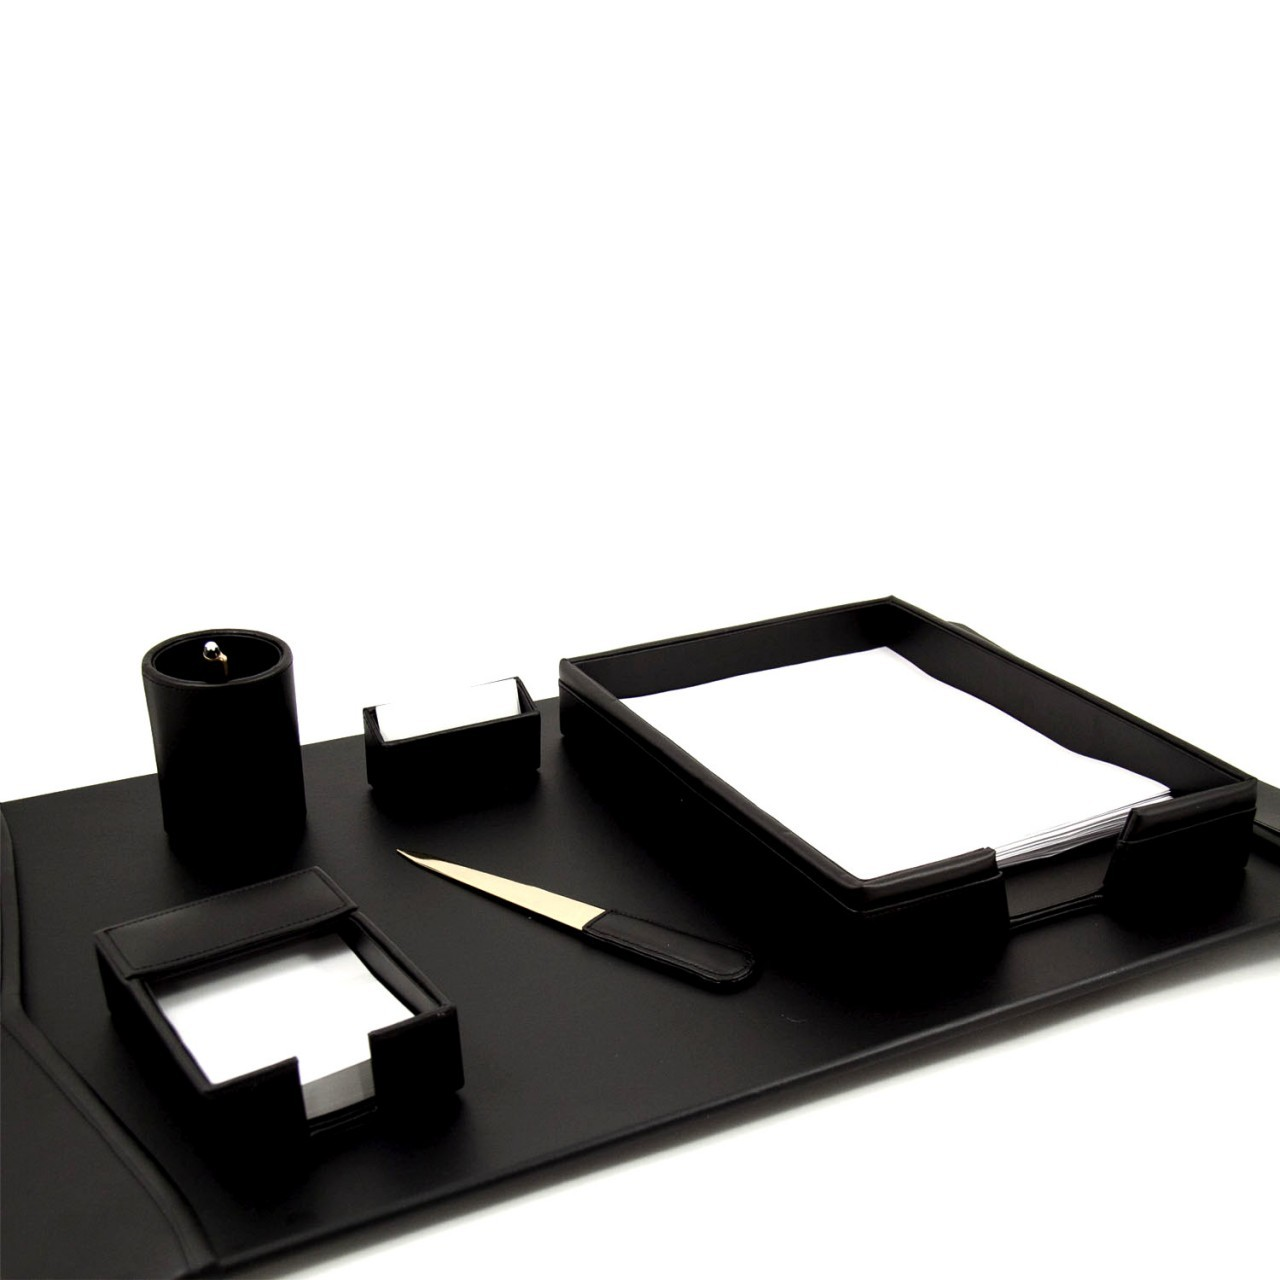 6 Piece Black Leather Desk Set Includes 18 X30 Pad